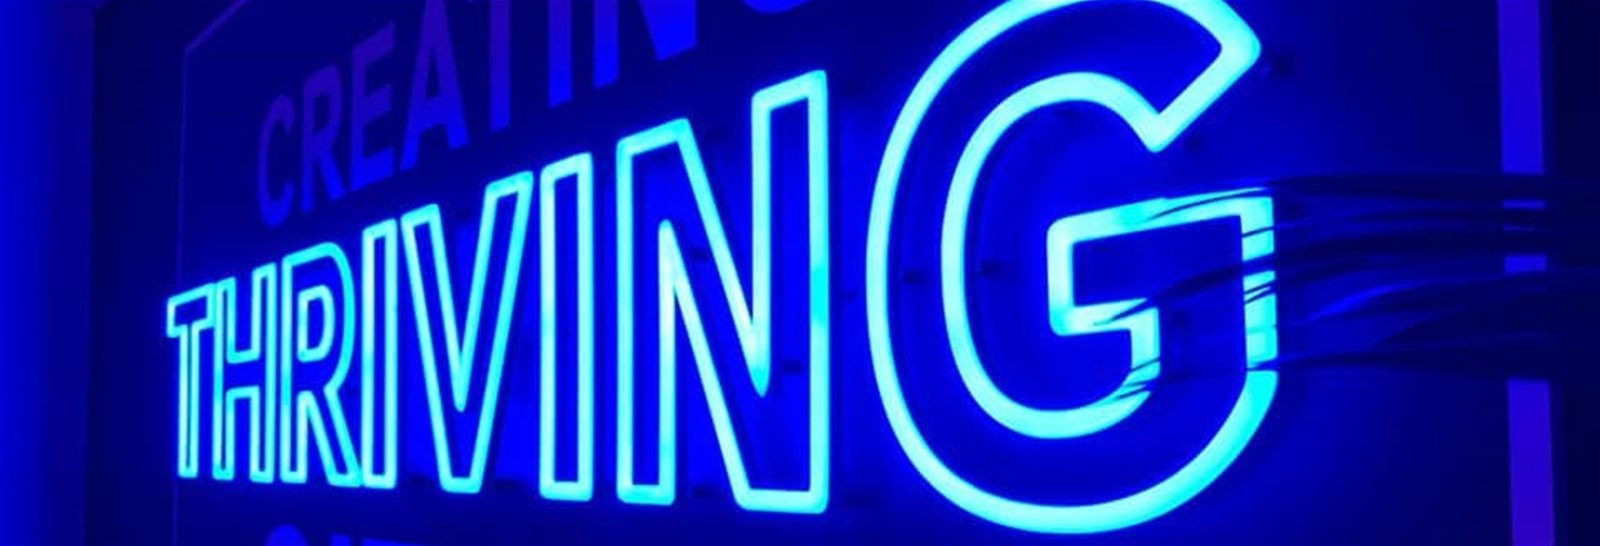 Faux neon illuminated sign in office - Signs Express